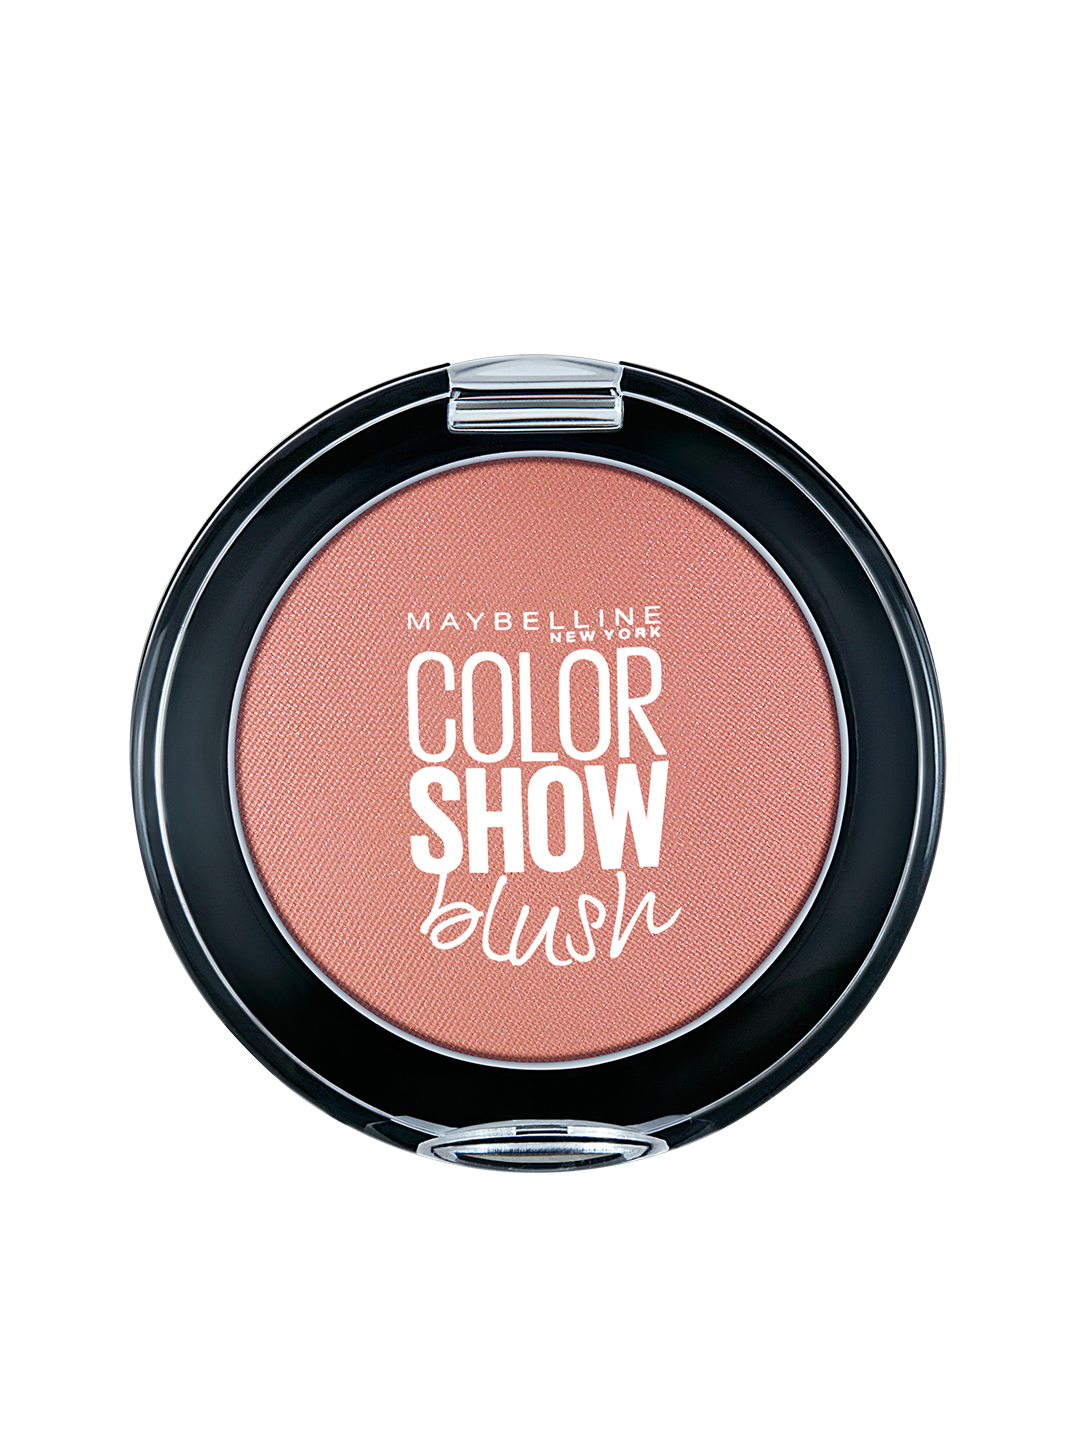 Maybelline New York Creamy Cinnamon Color Show Blush 7gm Price in India